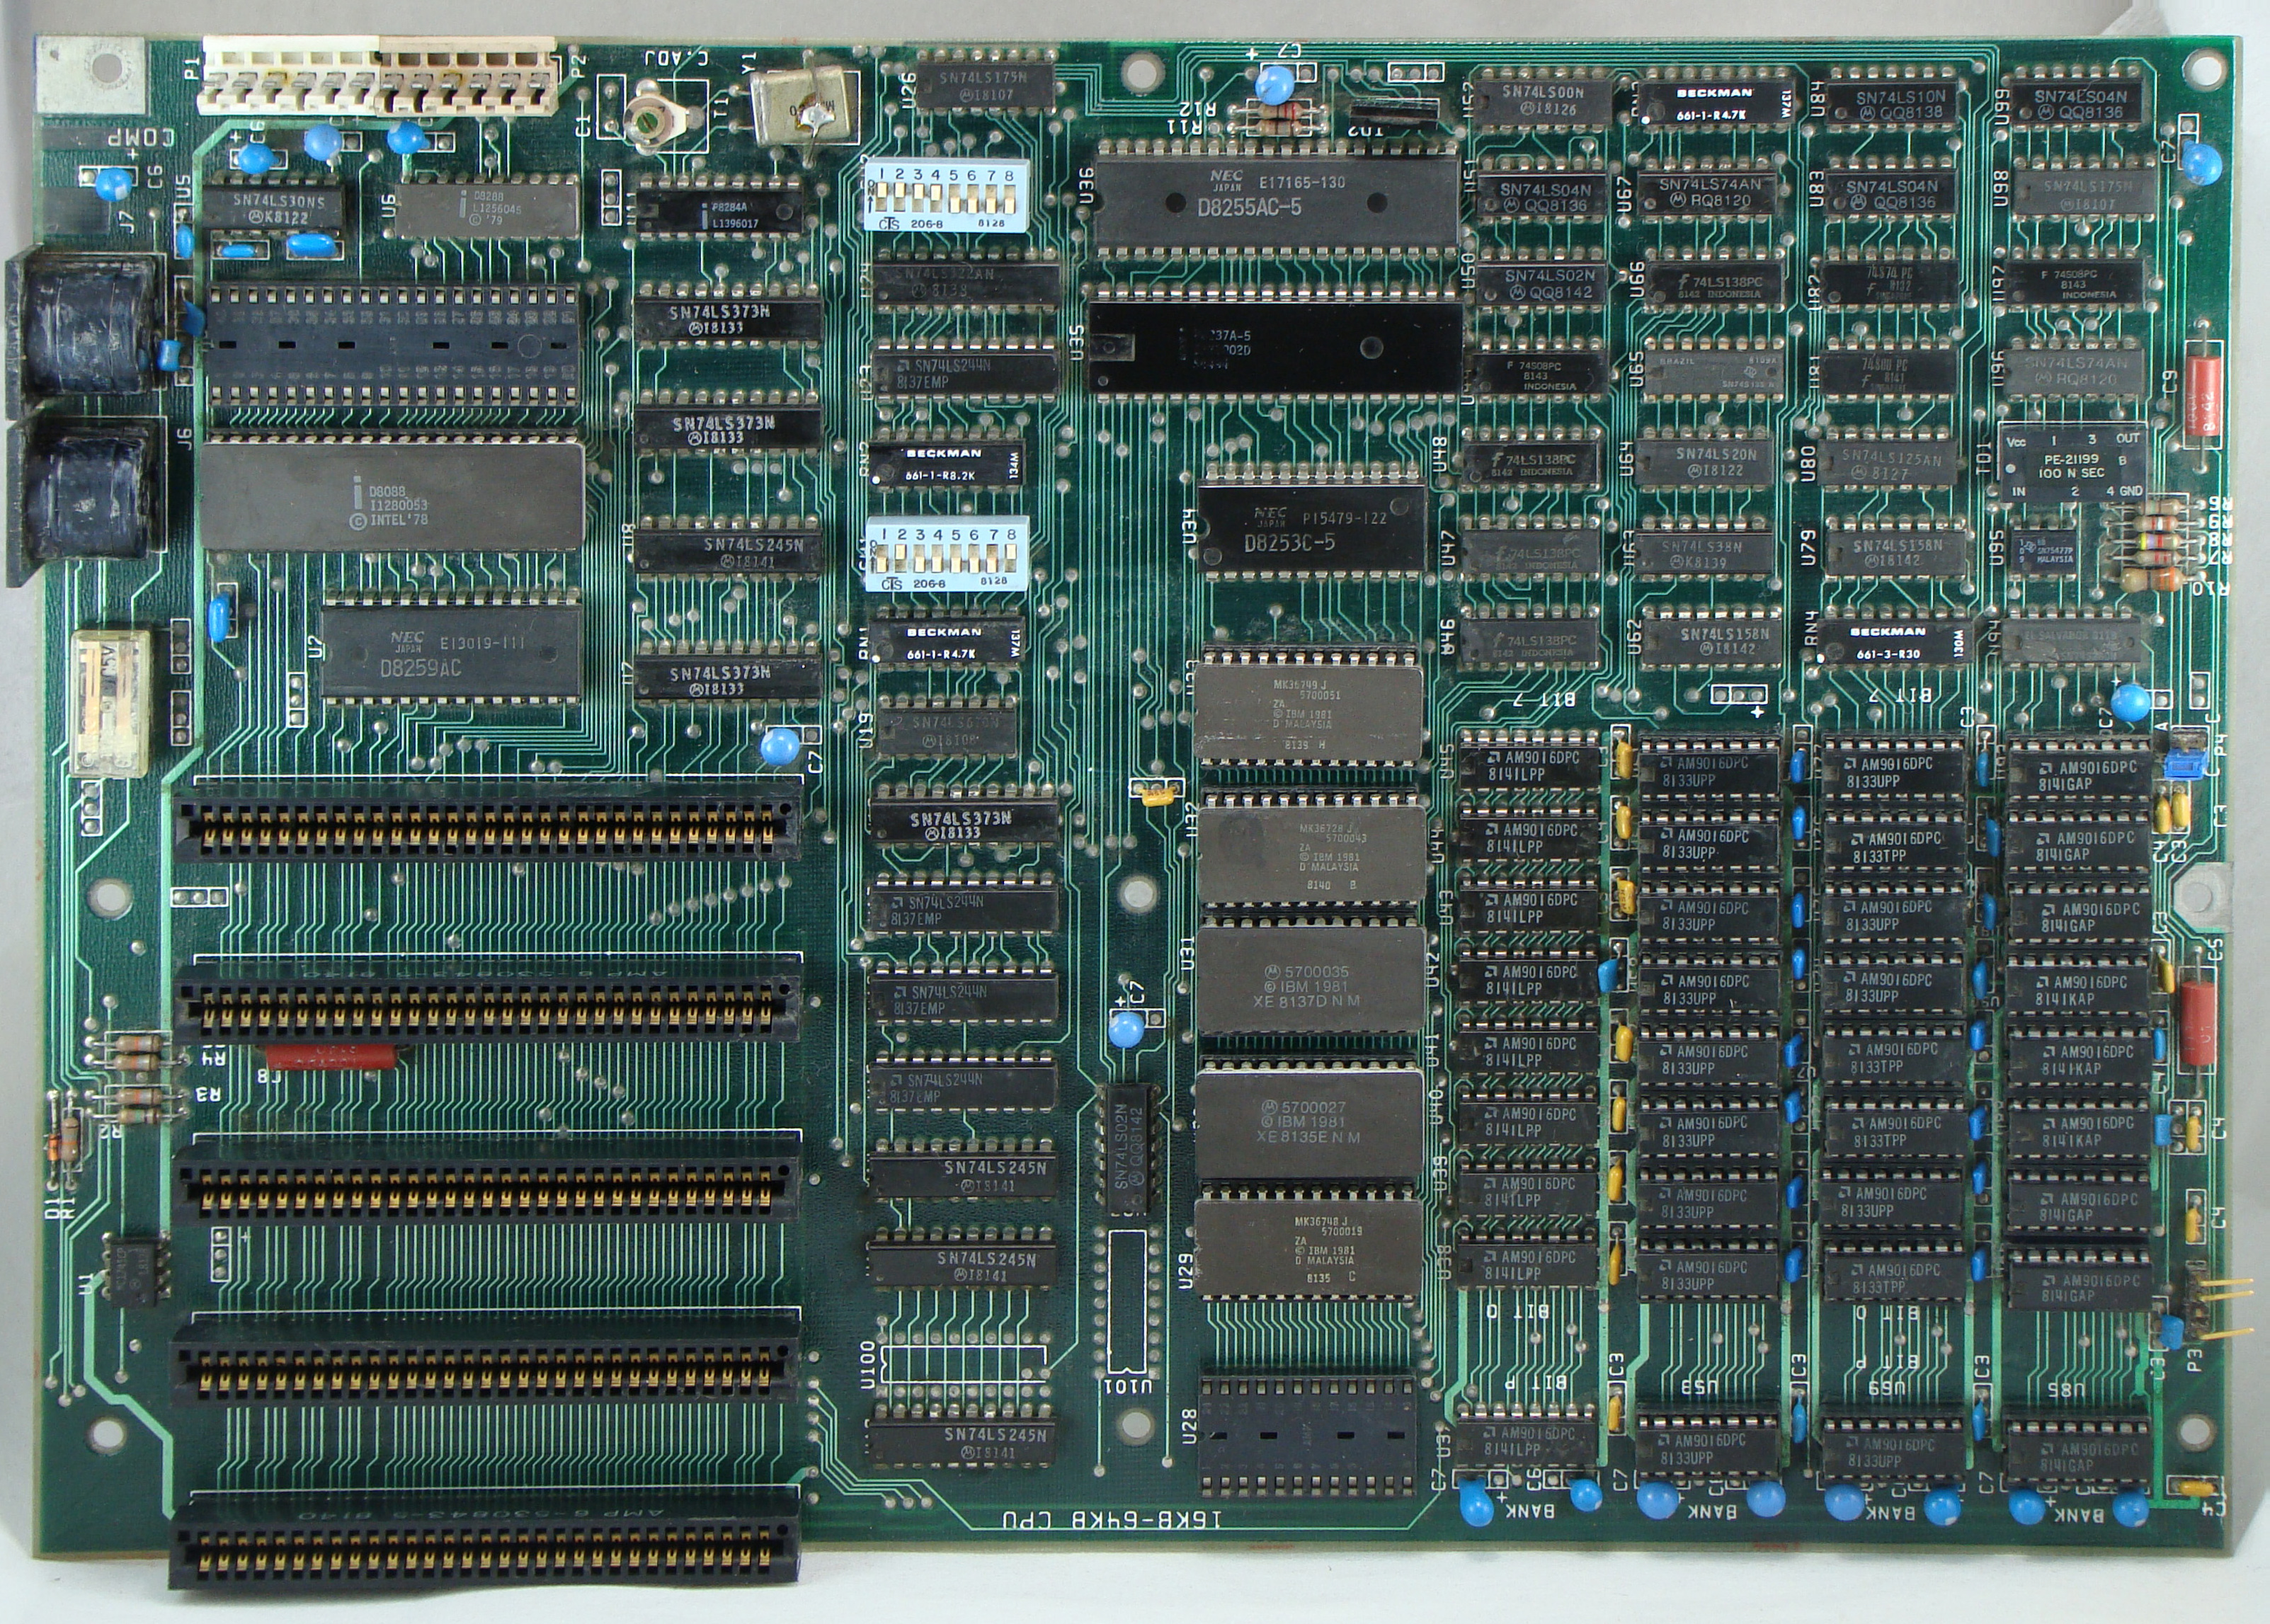 Ibm Circuit Board Diagram Electrical Wiring Parts Identification File Pc Motherboard 1981 Wikimedia Commons Rh Org